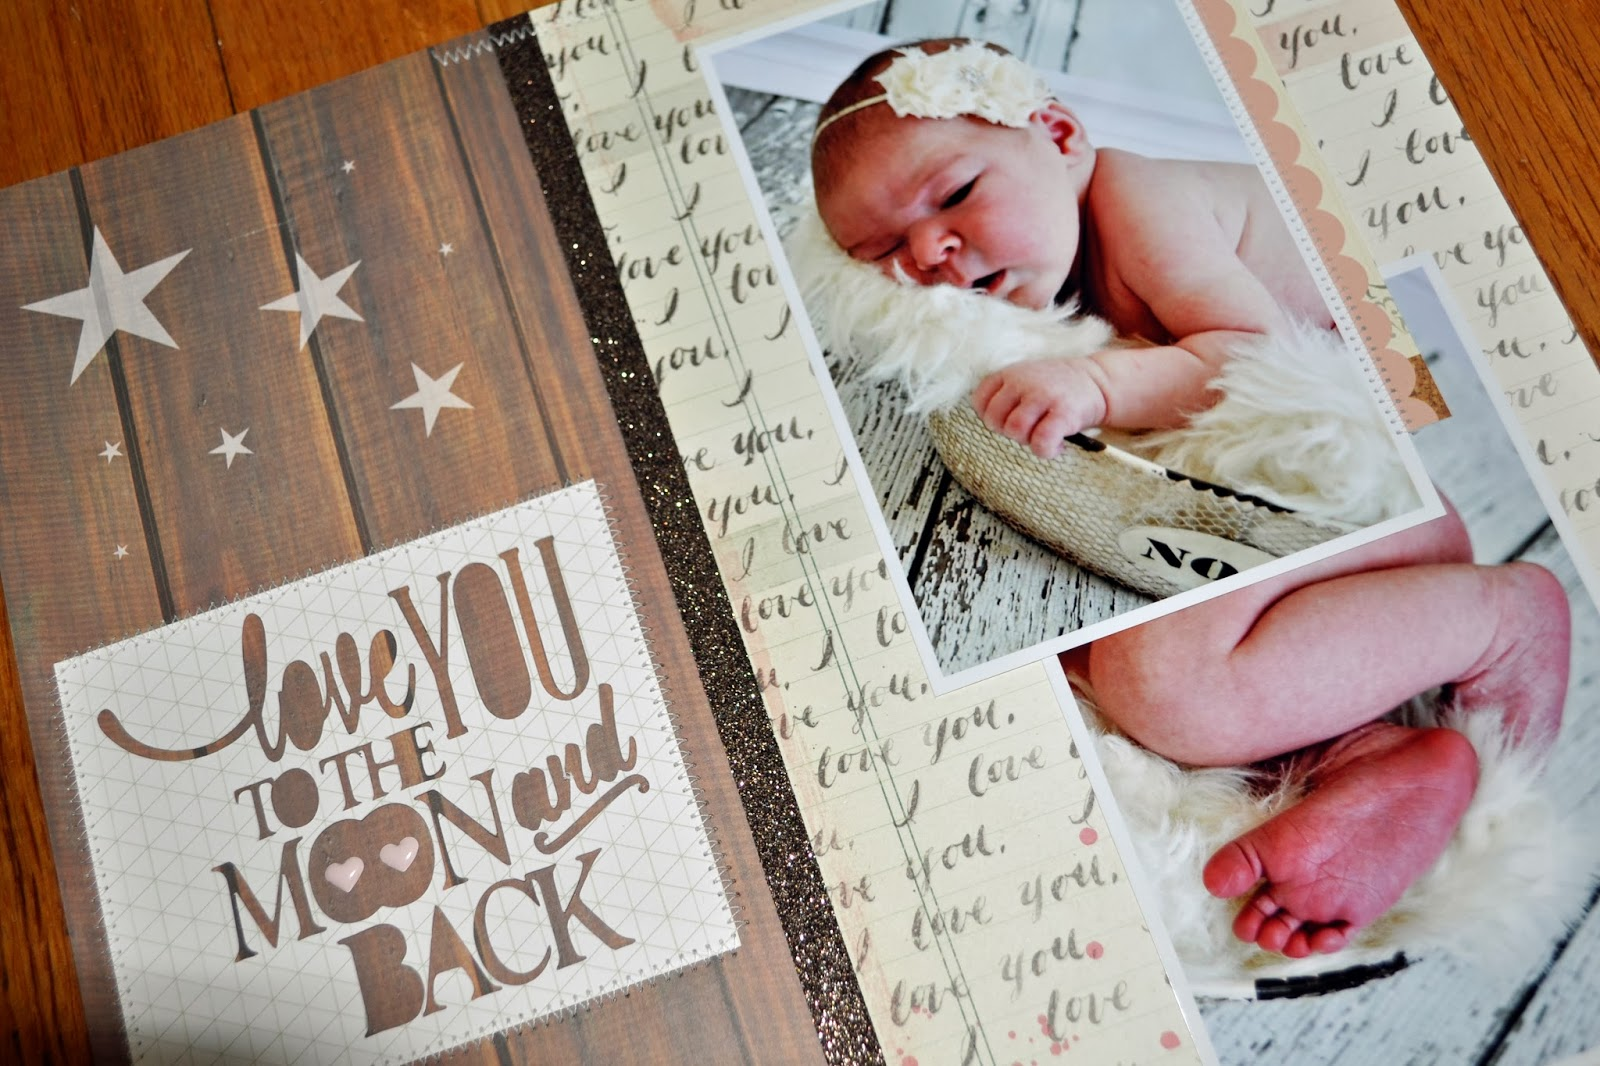 love you to the moon and back scrapbook page 12 x12 inspiration layout silouhette cut file title phrase baby photos brown wood panel i love you cream ivory pink glitter ribbon zig zag machine stitching stars